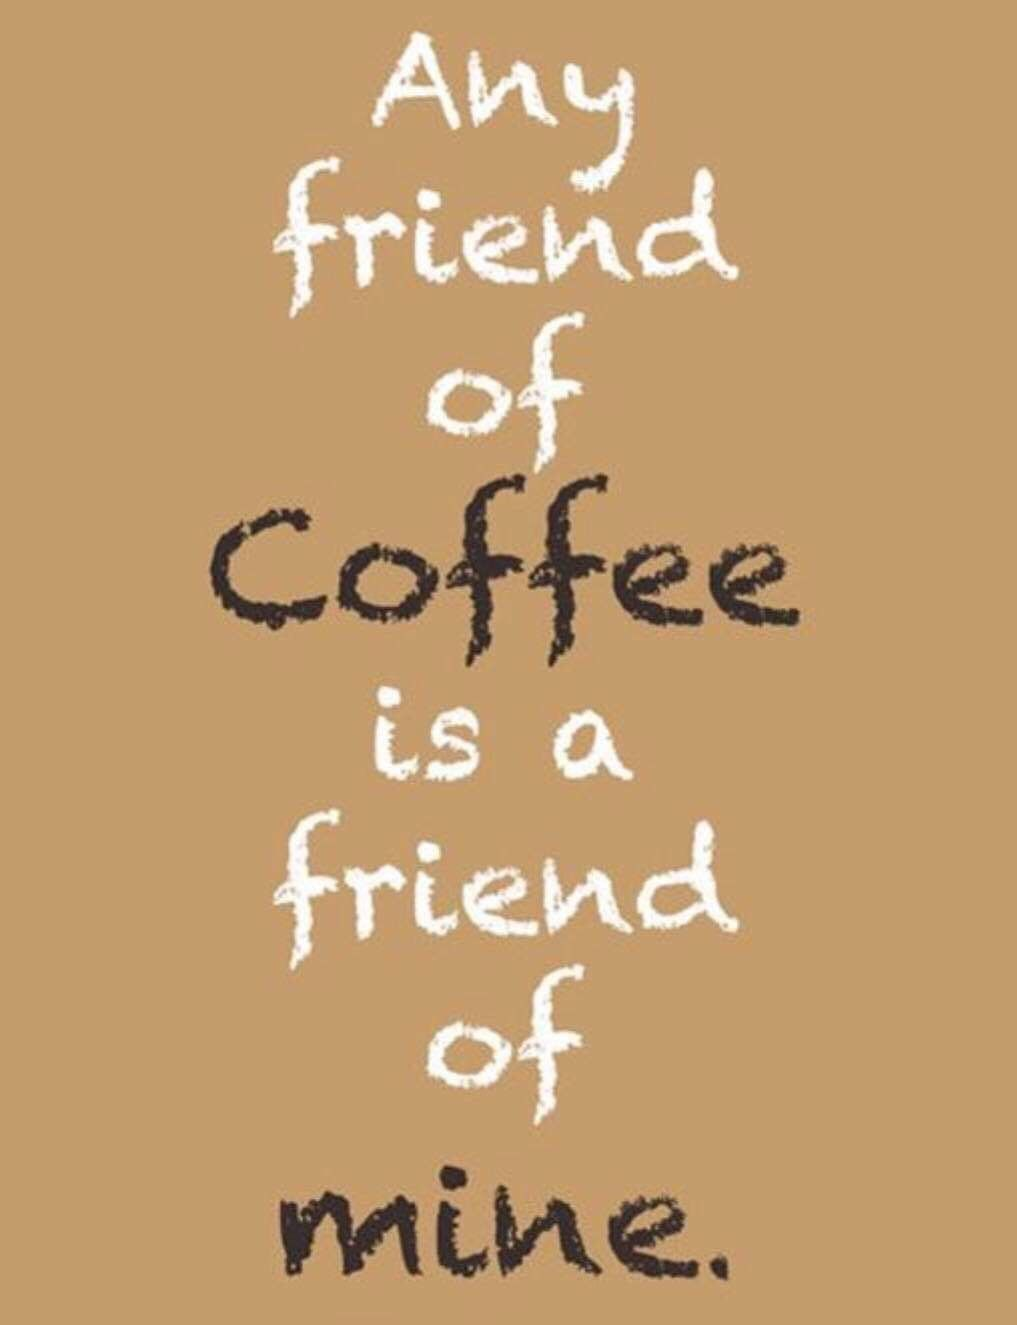 pin by tricia on coffee ☕ coffee friends quotes coffee quotes